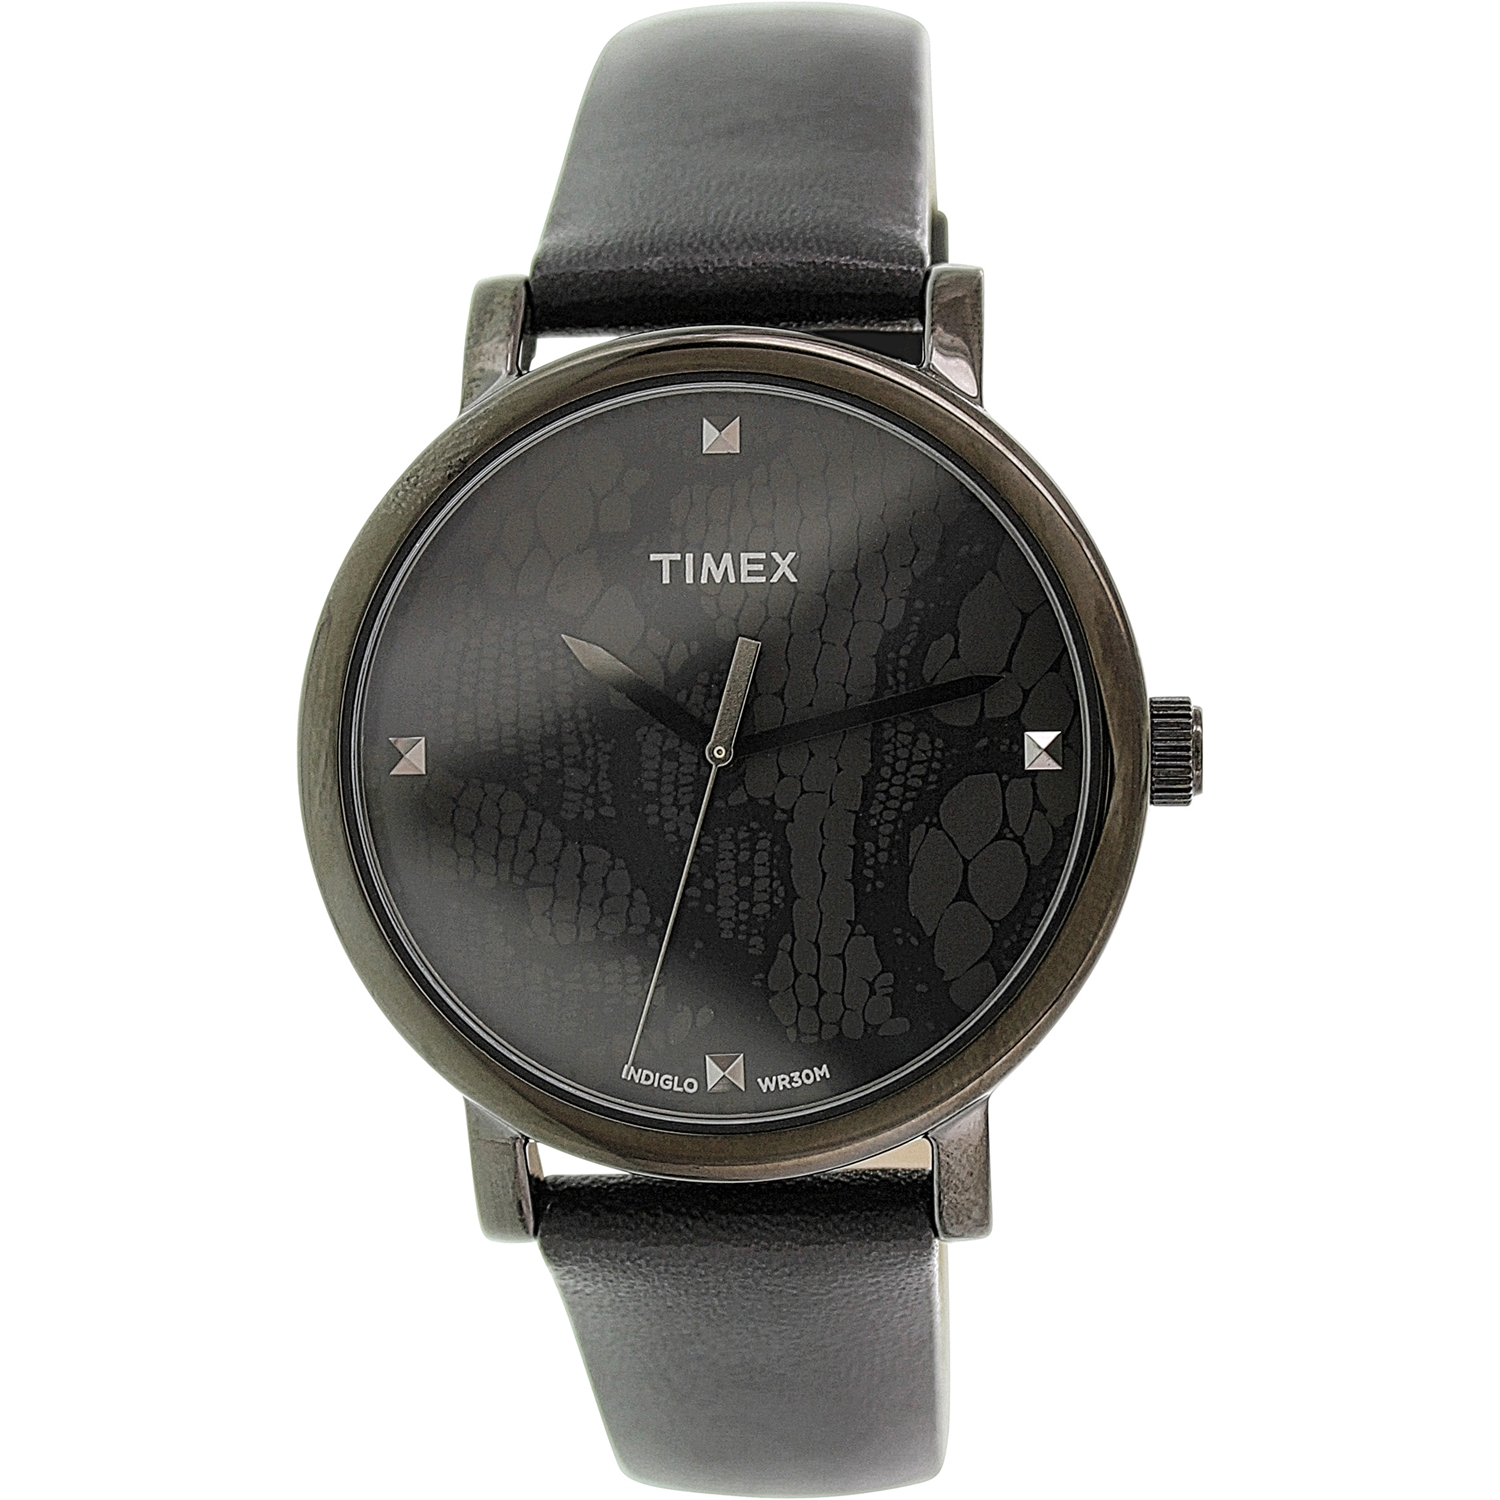 Timex Women's Originals T2P461 Black Leather Analog Quartz Fashion Watch